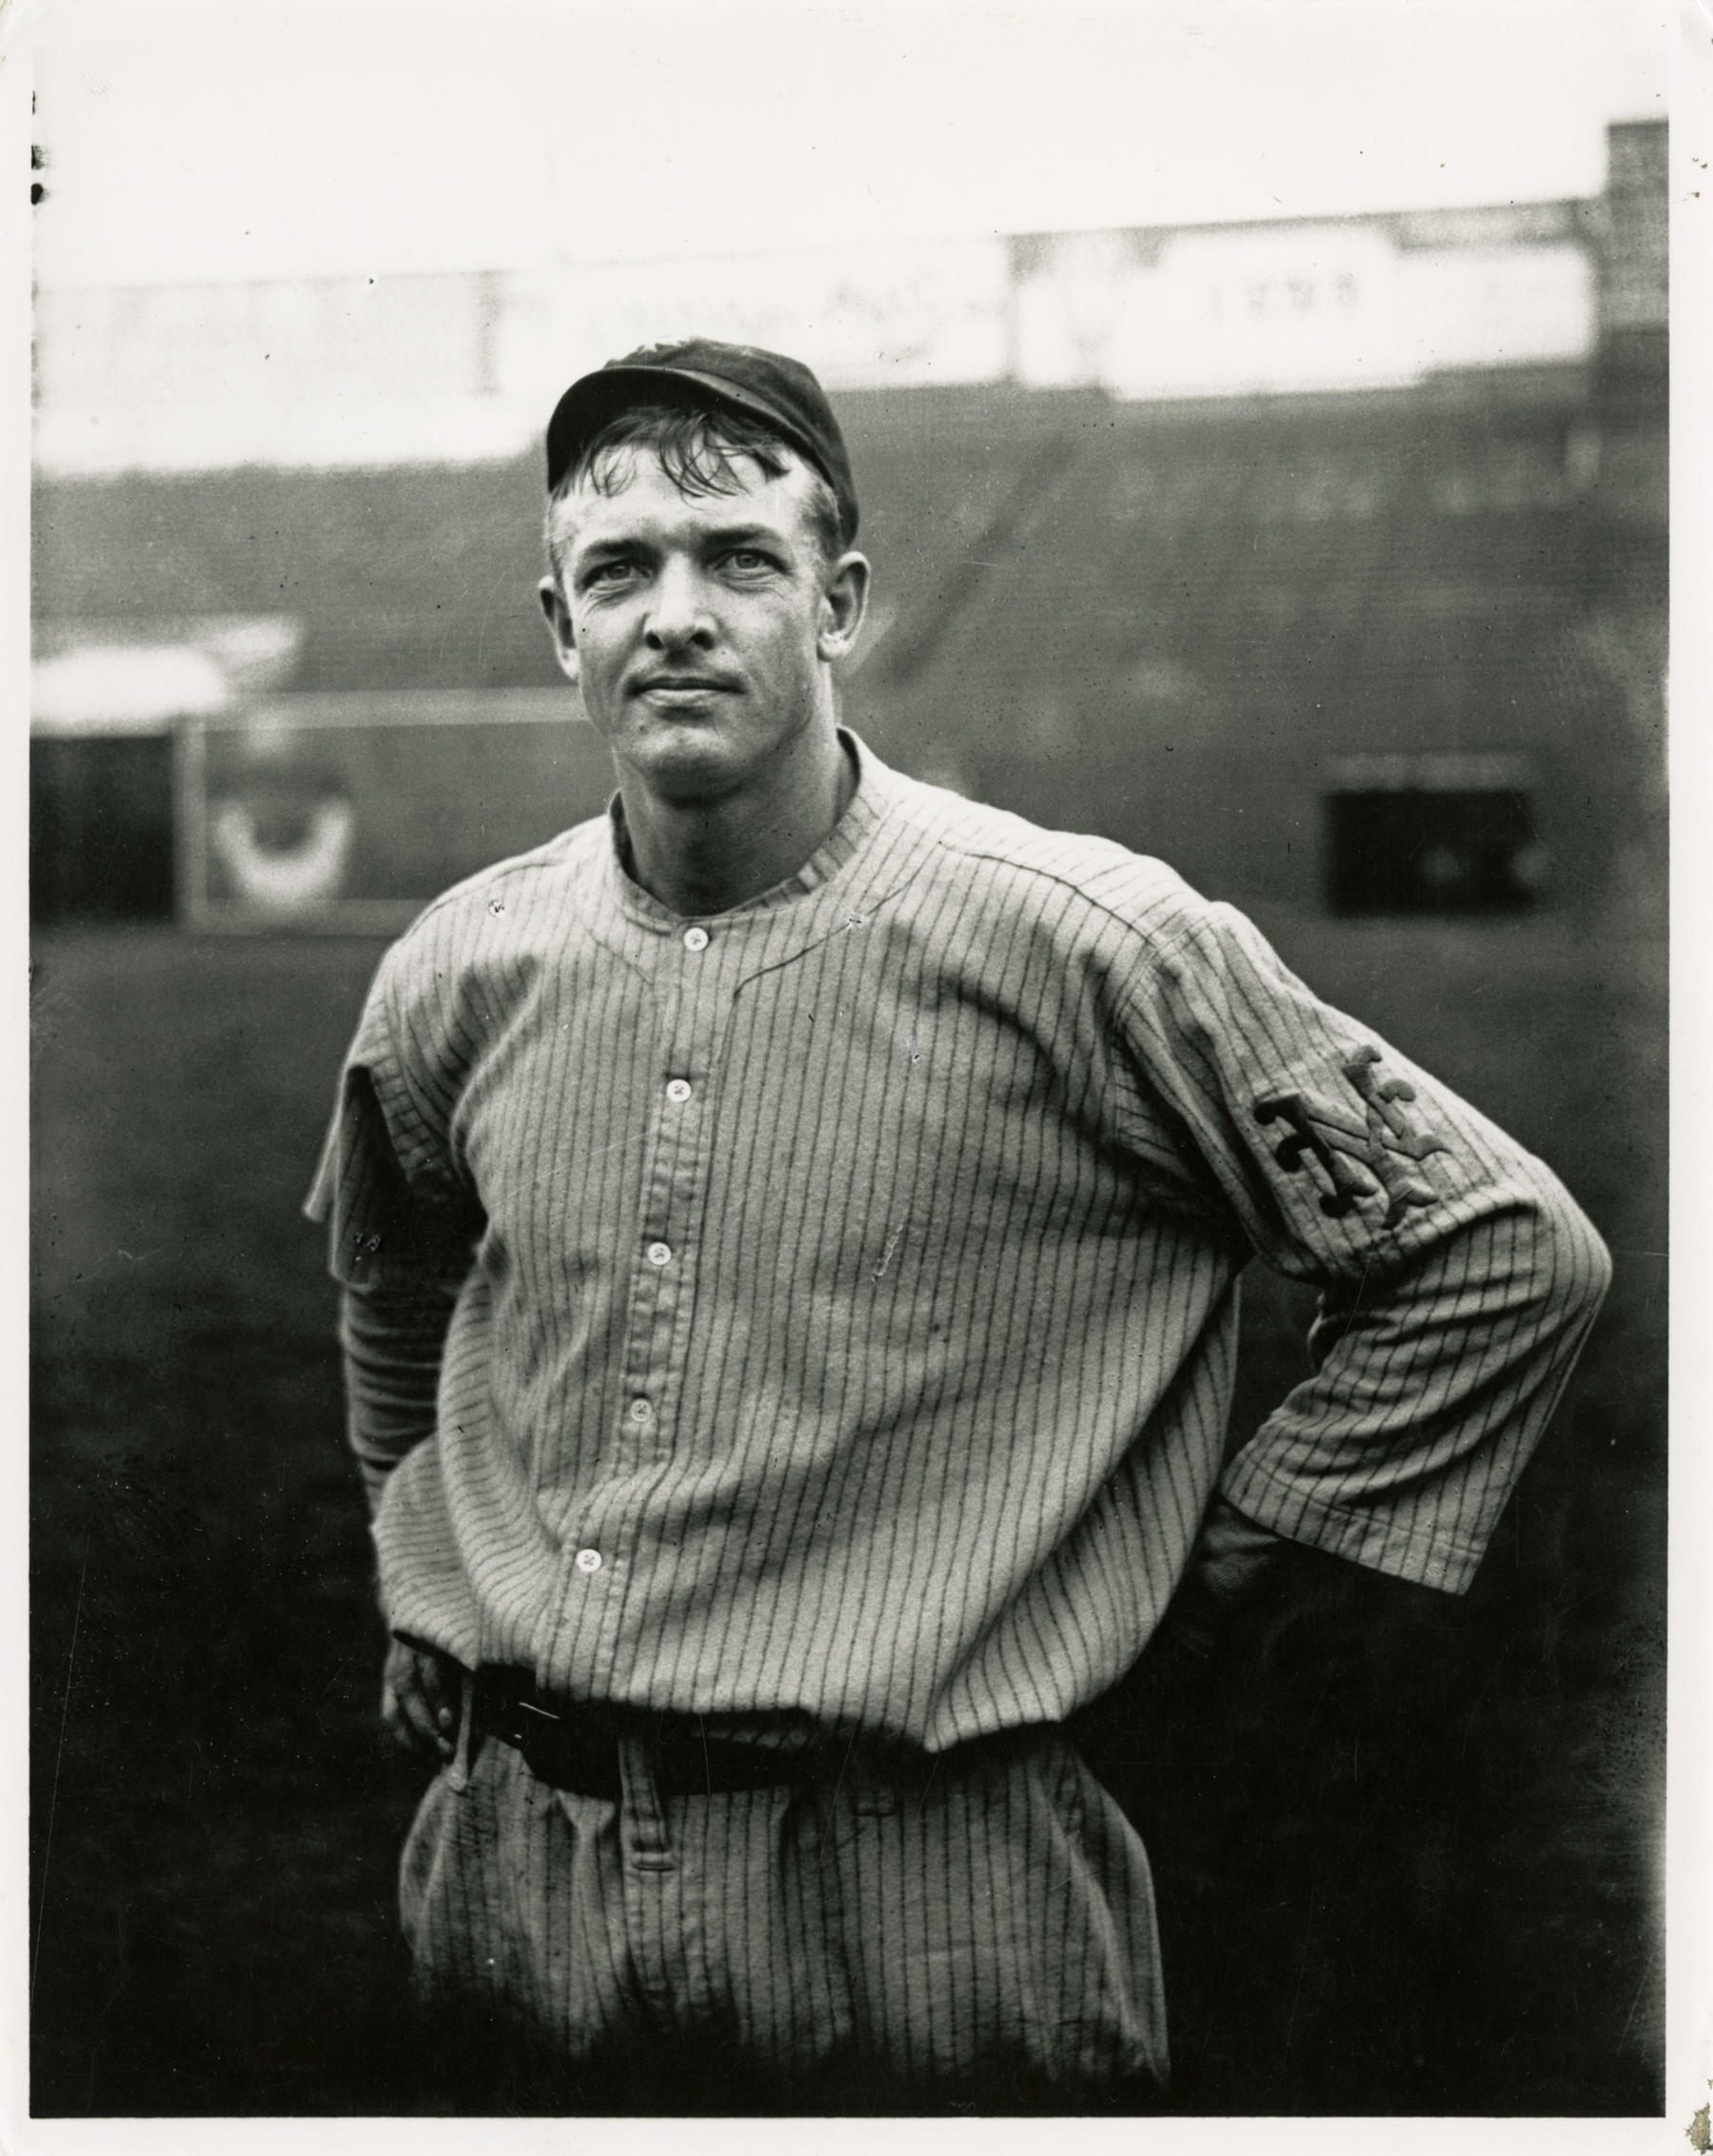 Charles Conlon captured this iconic photograph of Christy Mathewson, his friend and favorite subject, after a long day of practice in 1911.  Matthewson-Christy-7319-89-FL-SN-Conlon  (National Baseball Hall of Fame and Library)